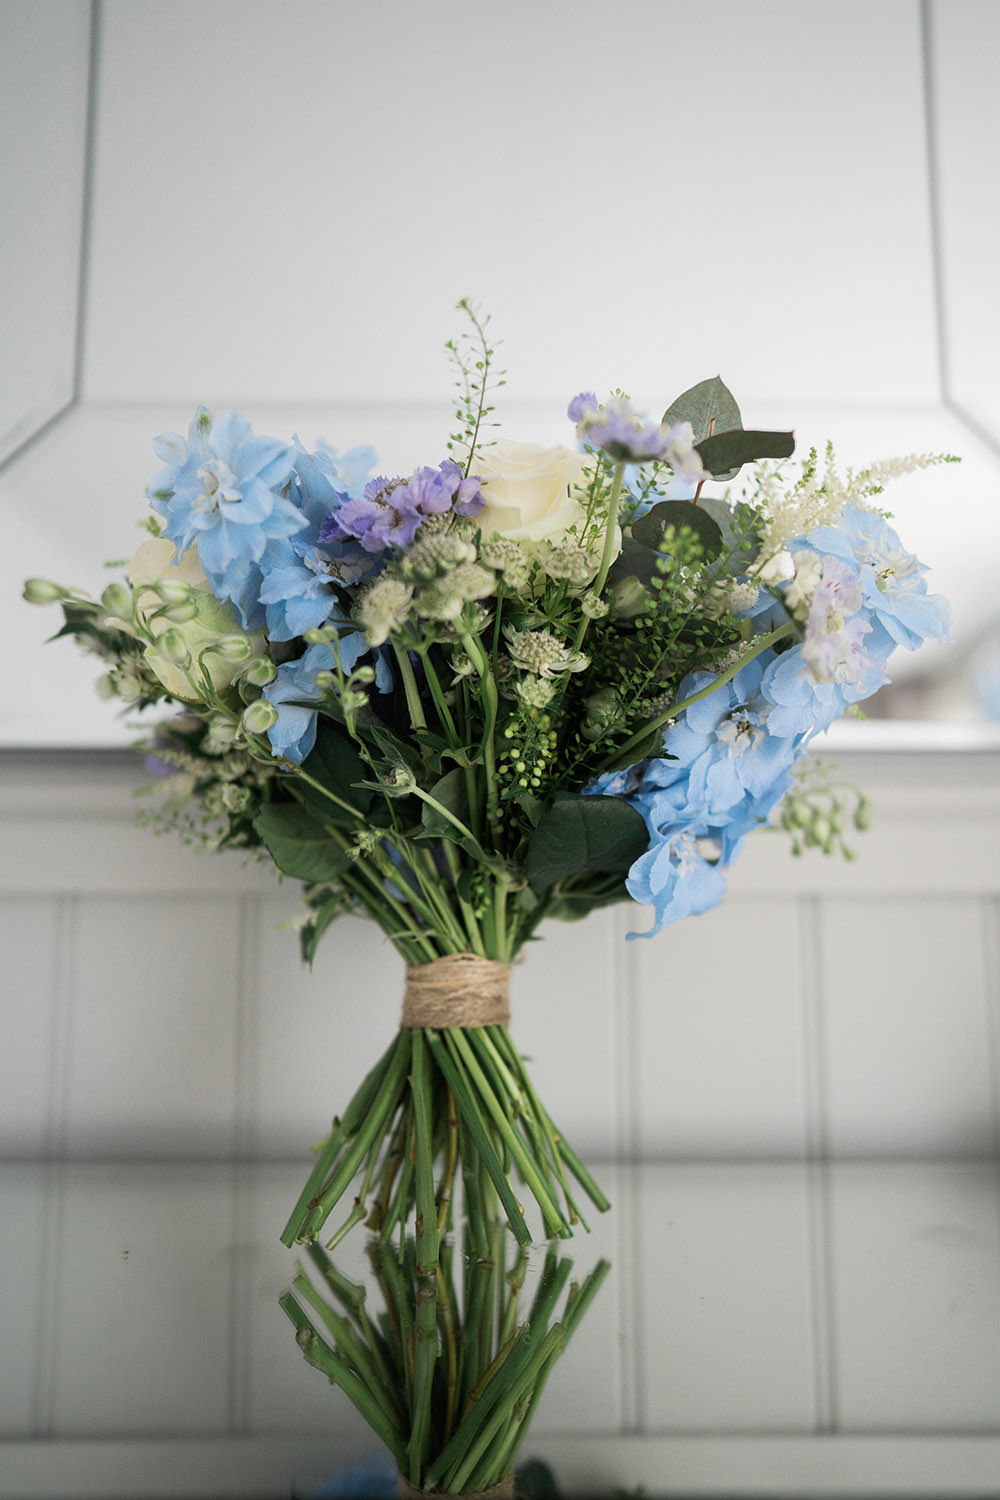 Bouquet Flowers Bride Bridal Blue Astilbe Delphiniums Roses Scabious Thaspi Eucalyptus Ever After Wedding Younger Photography